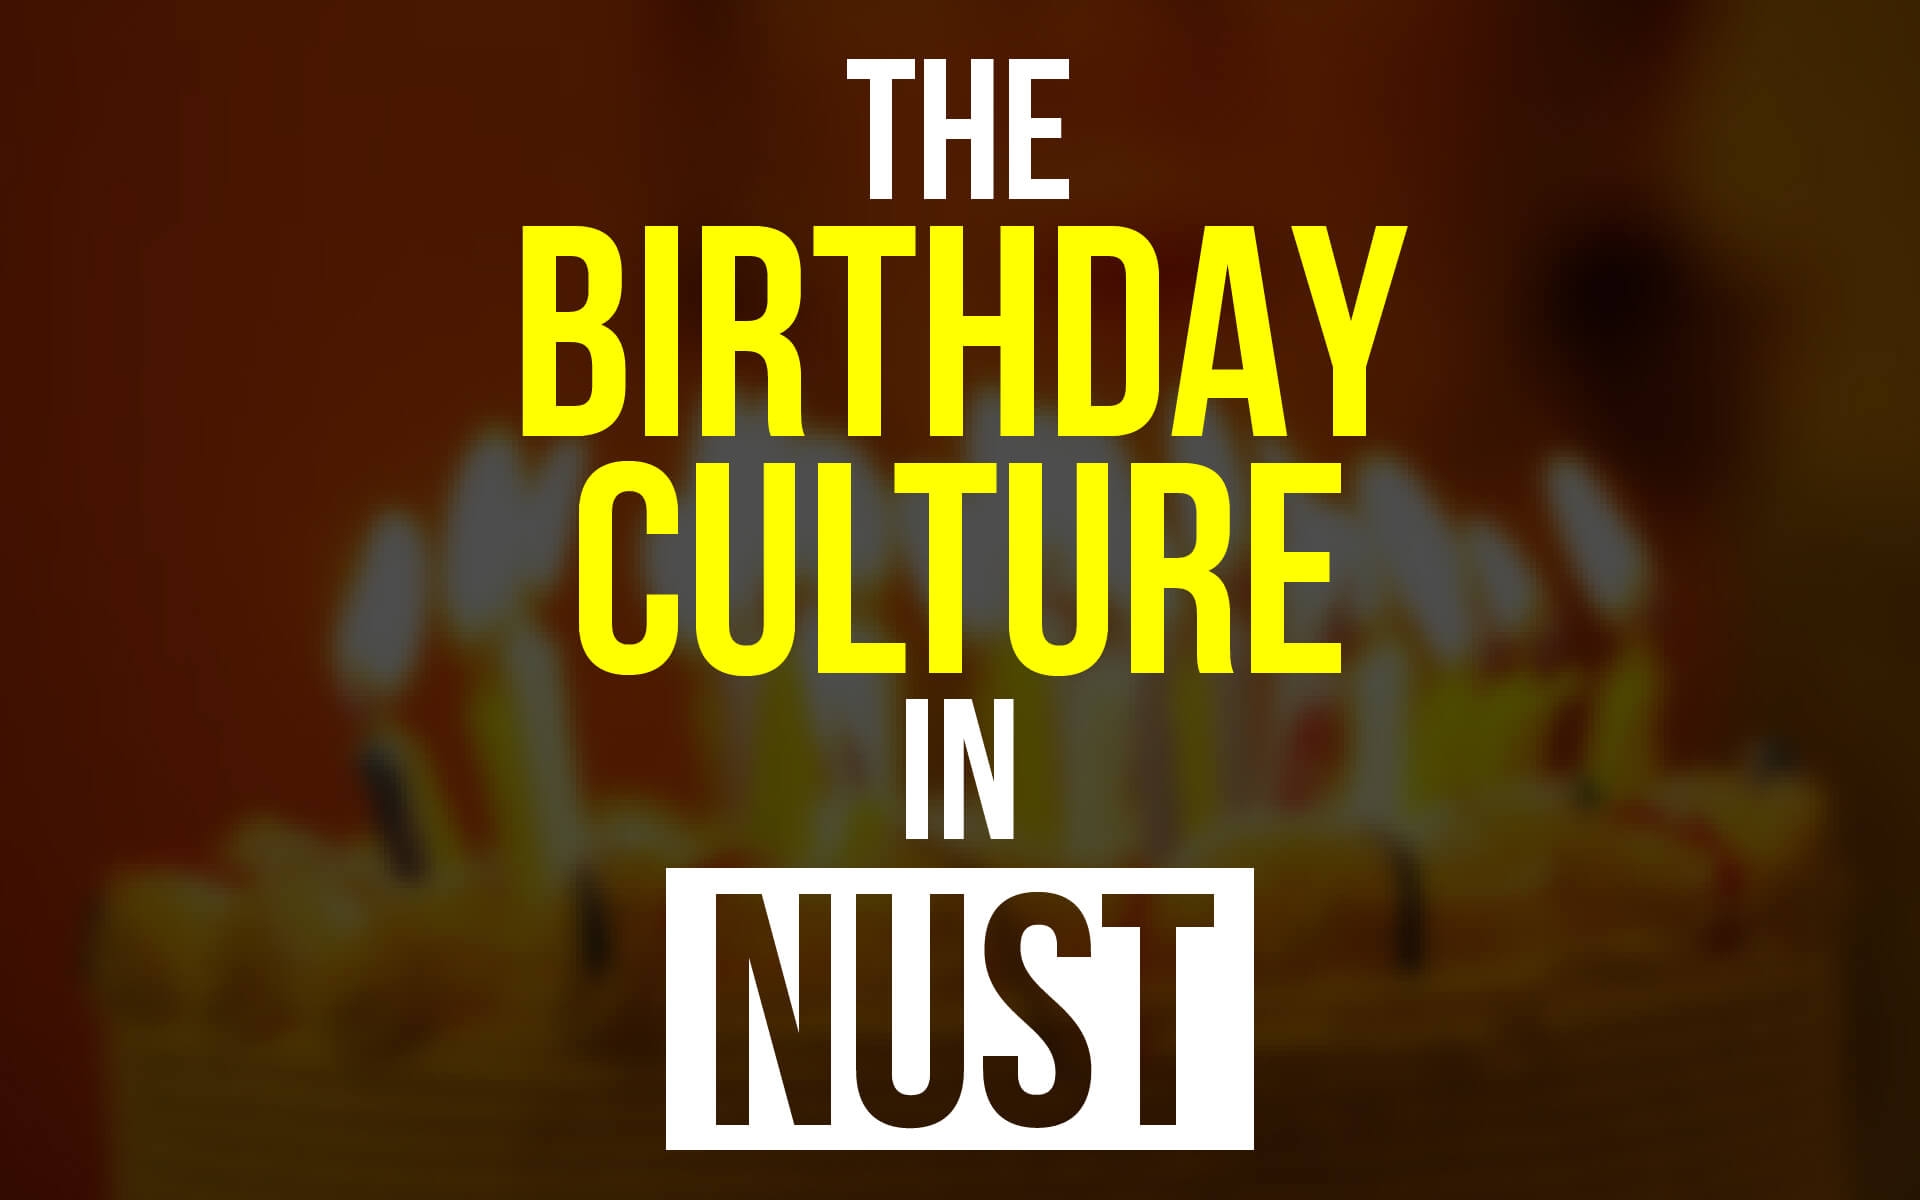 Birthday Culture In NUST